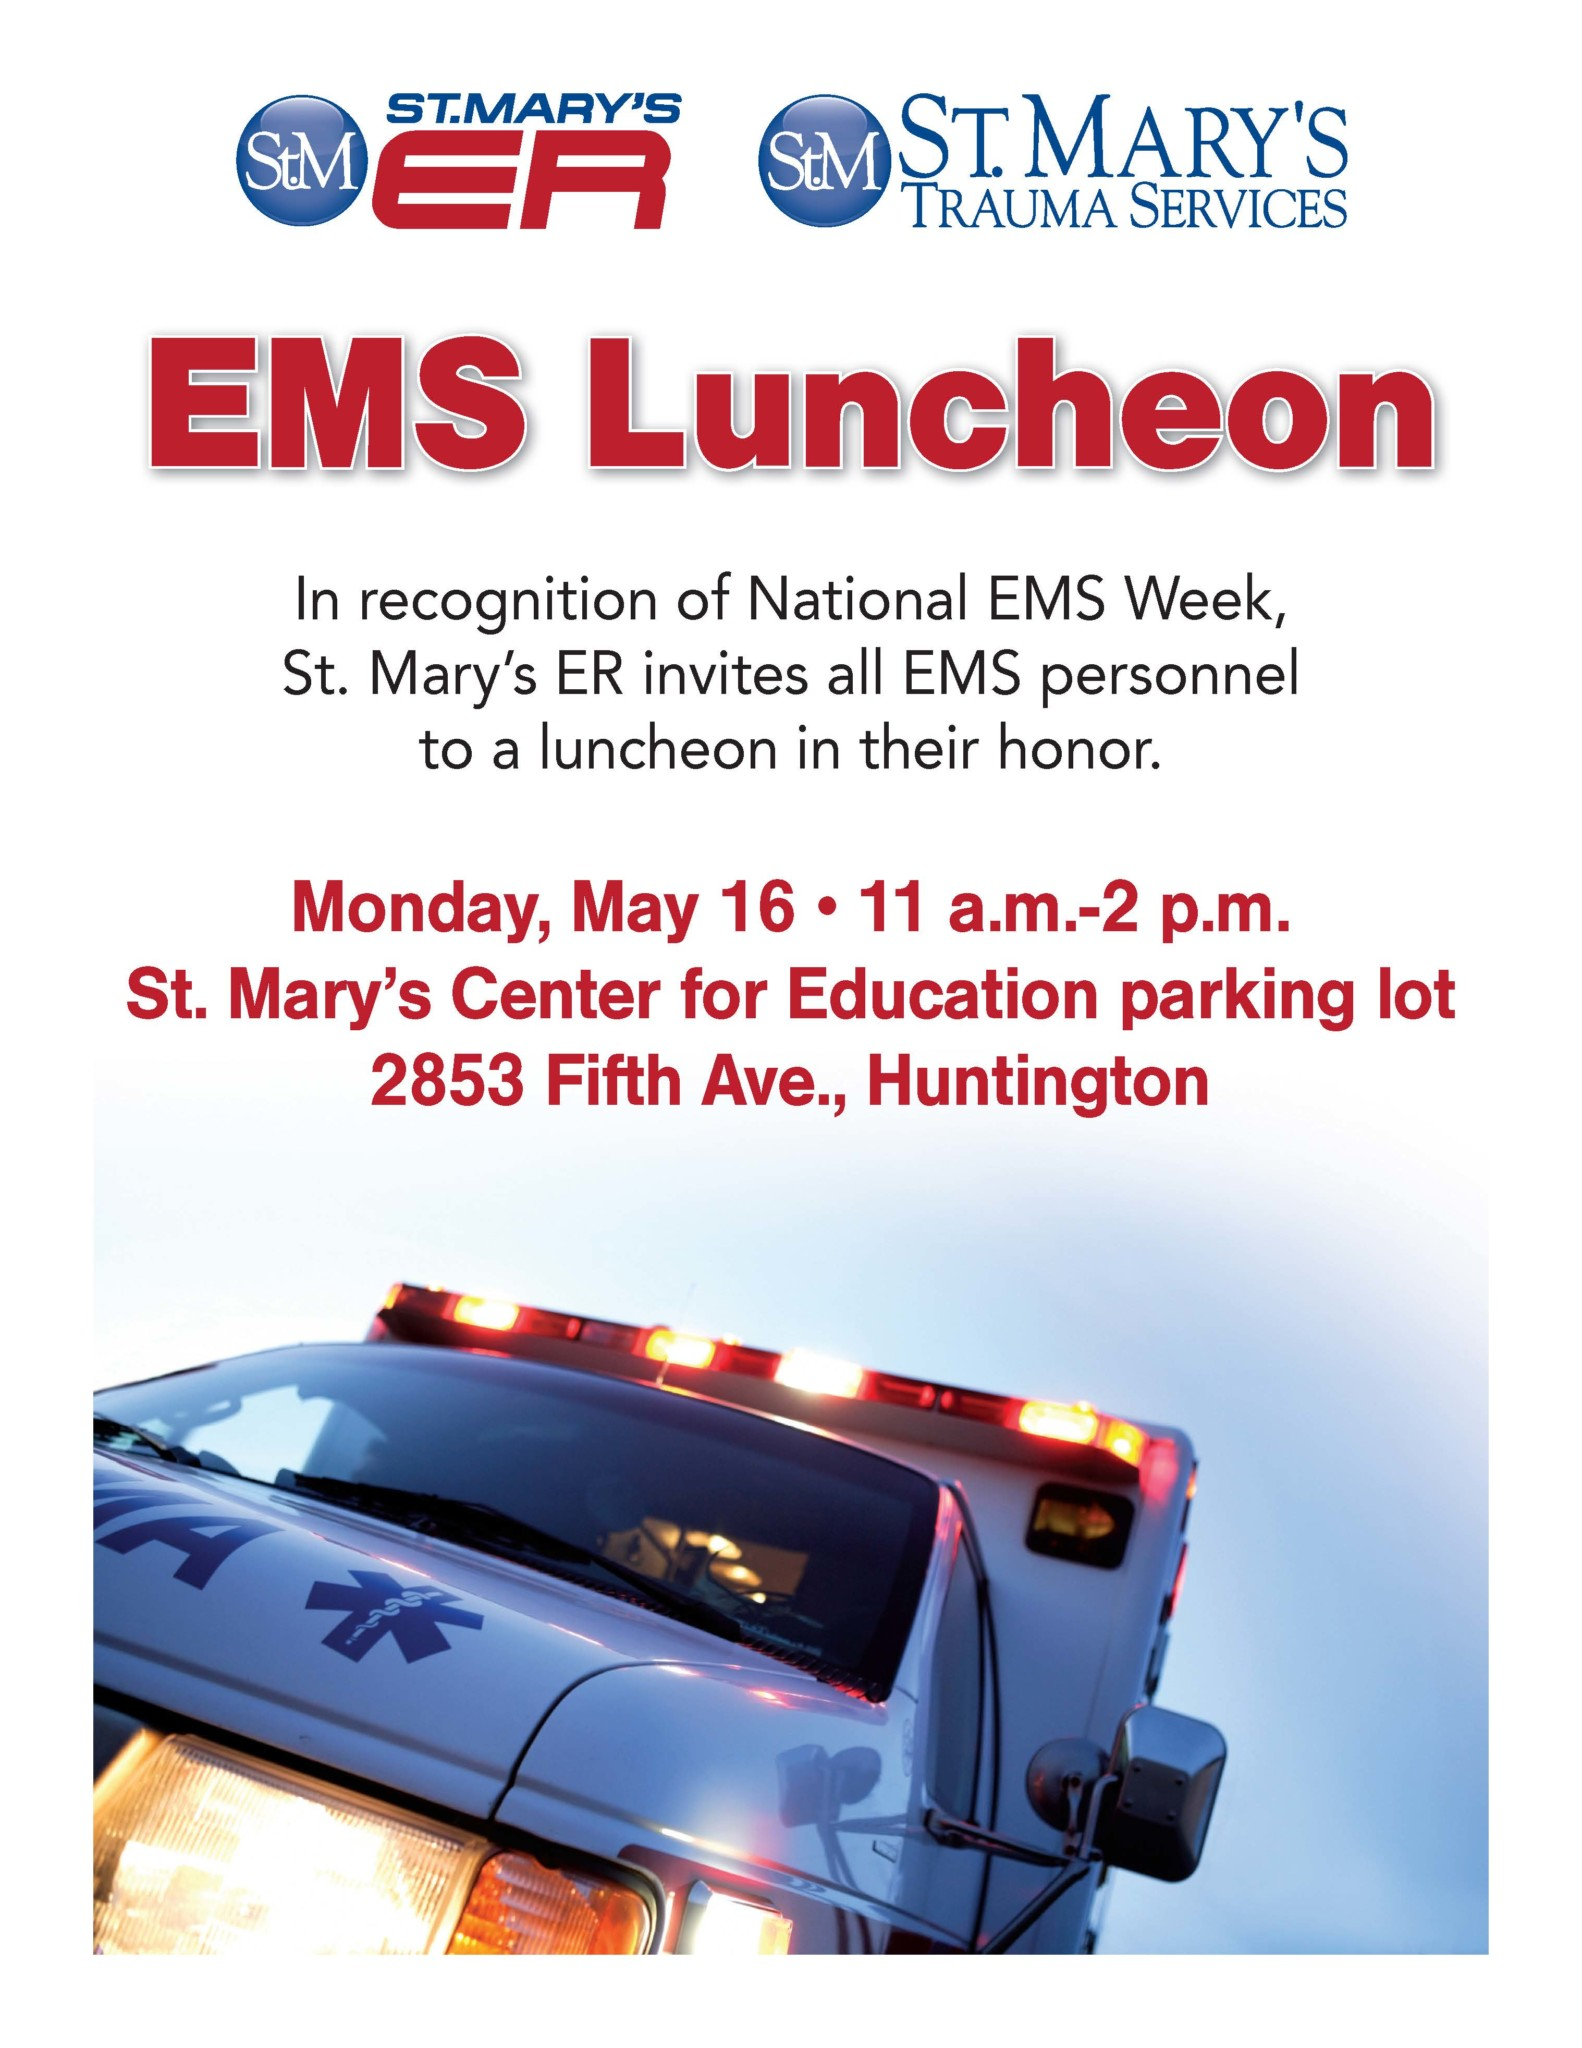 St. Mary's EMS Luncheon Invitation 2016